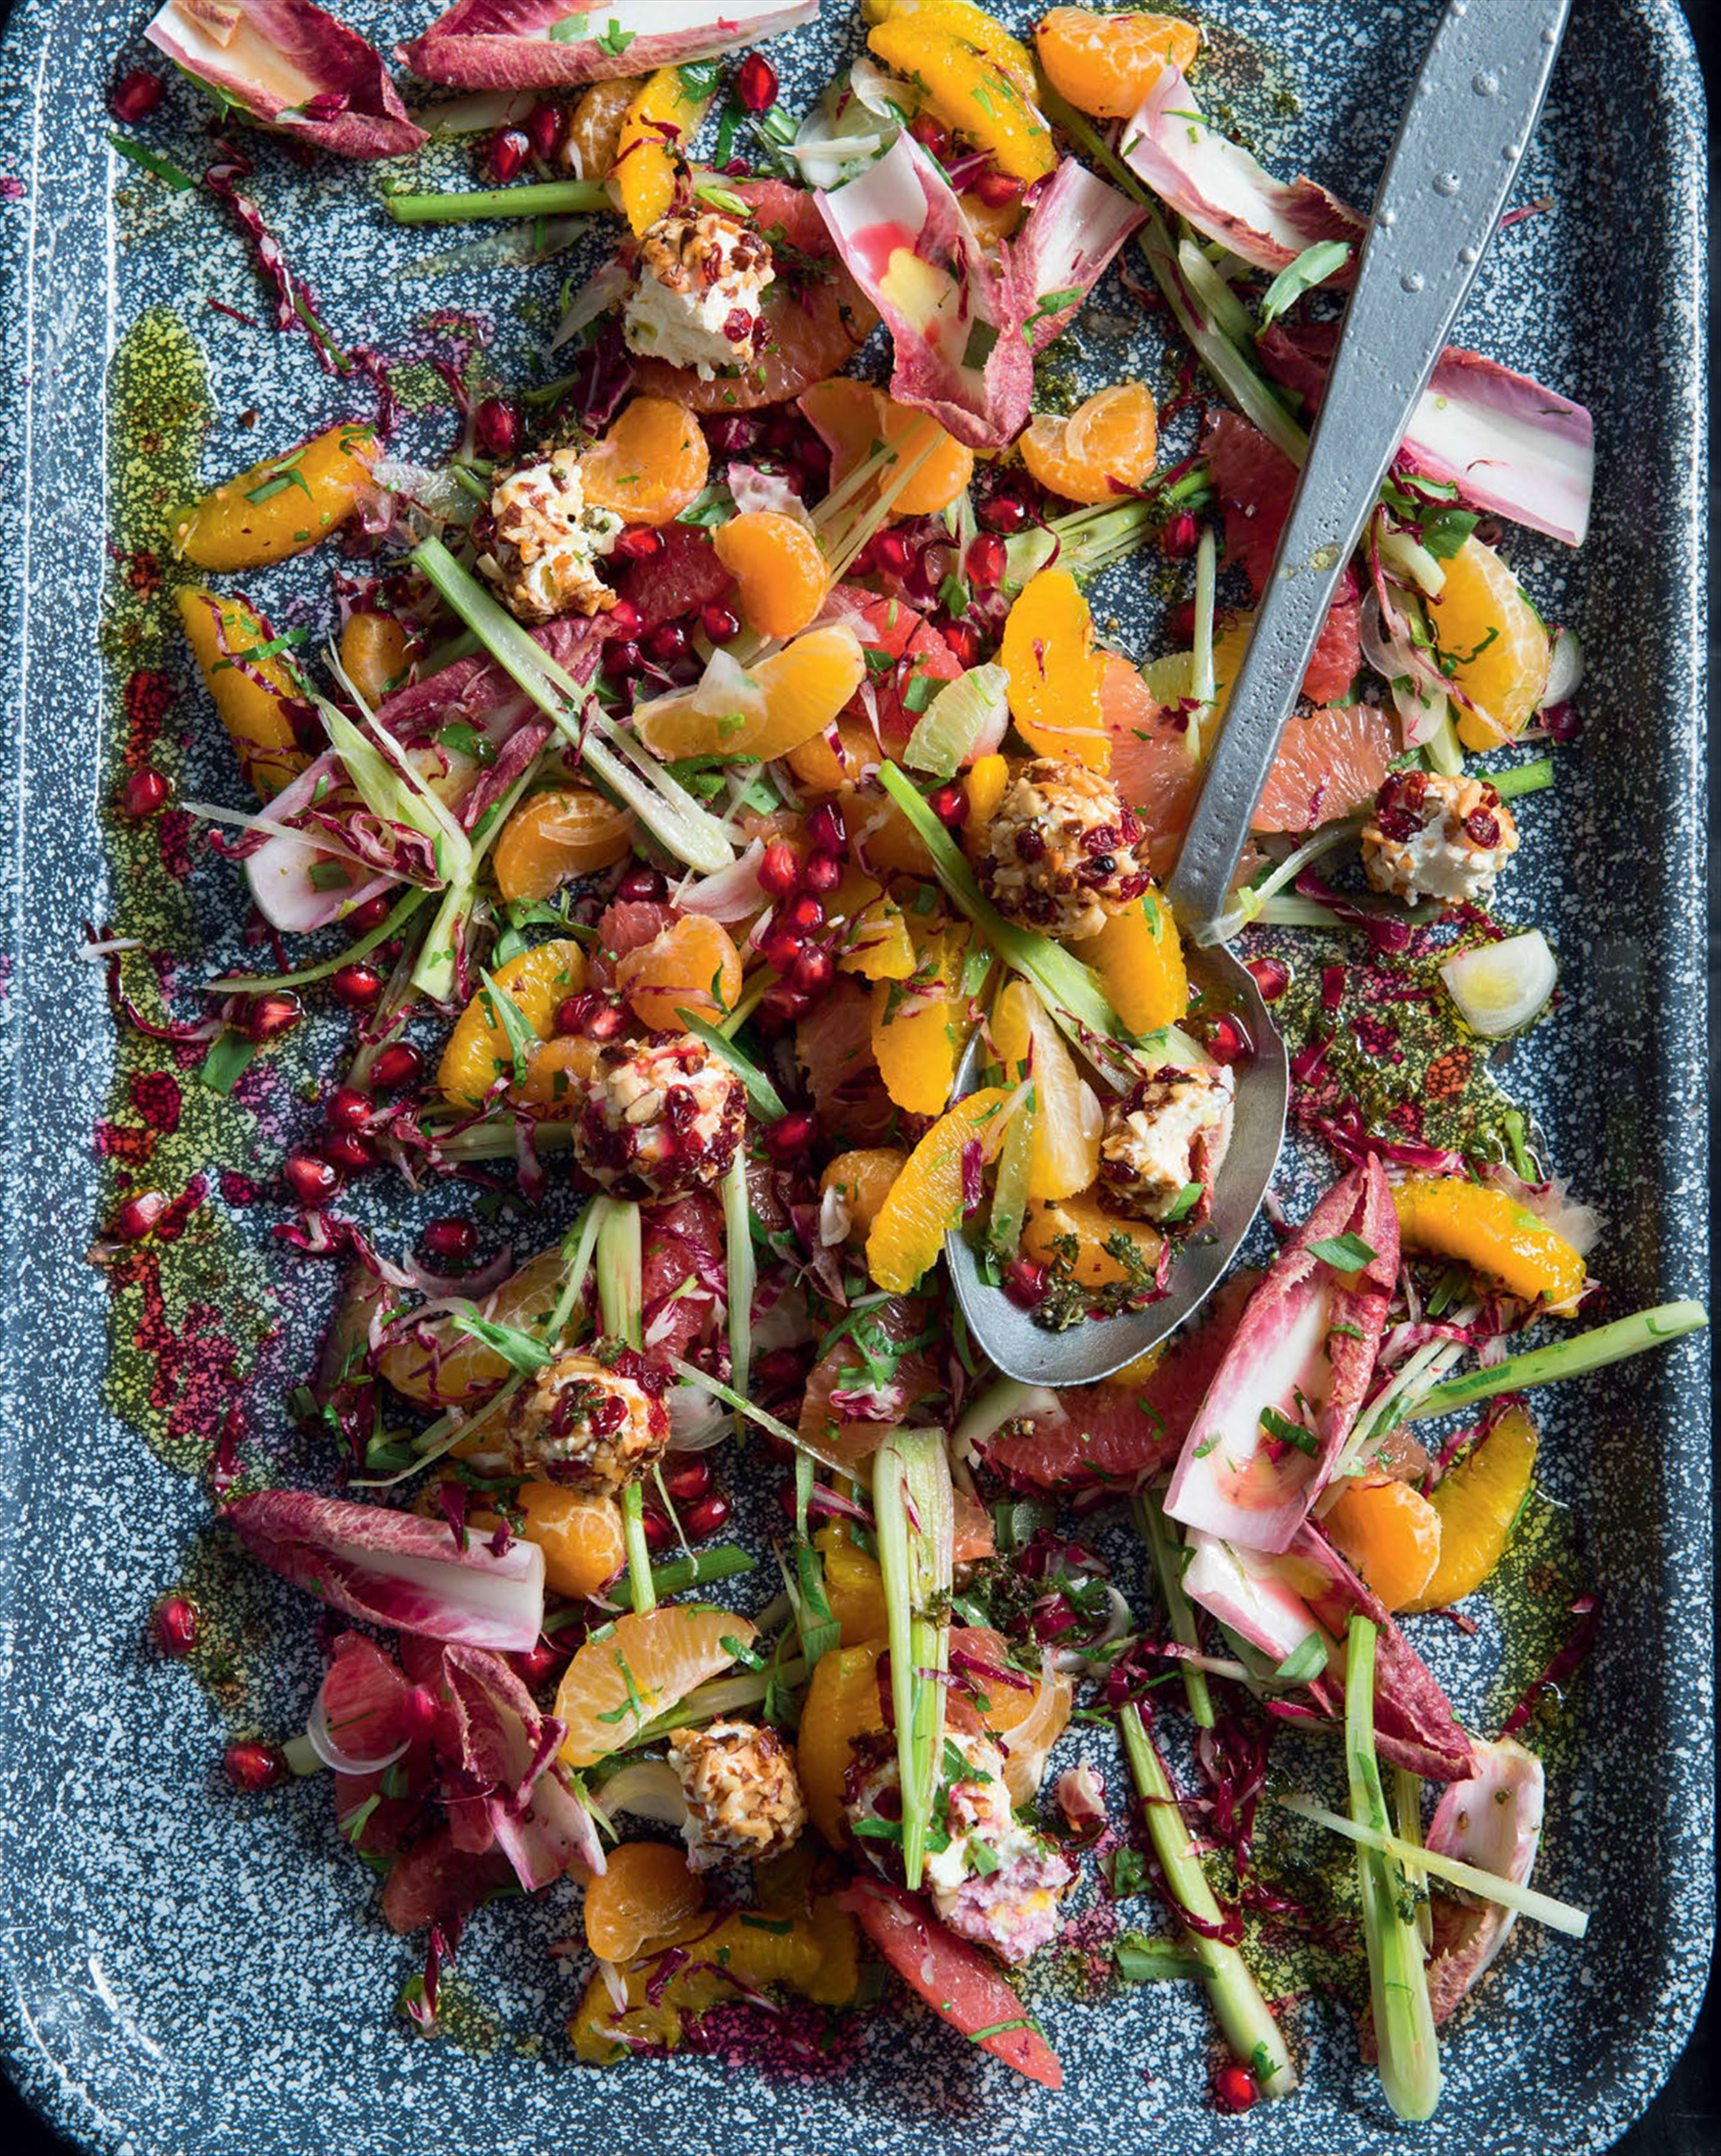 Citrus salad with red radicchio & pomegranate dressing